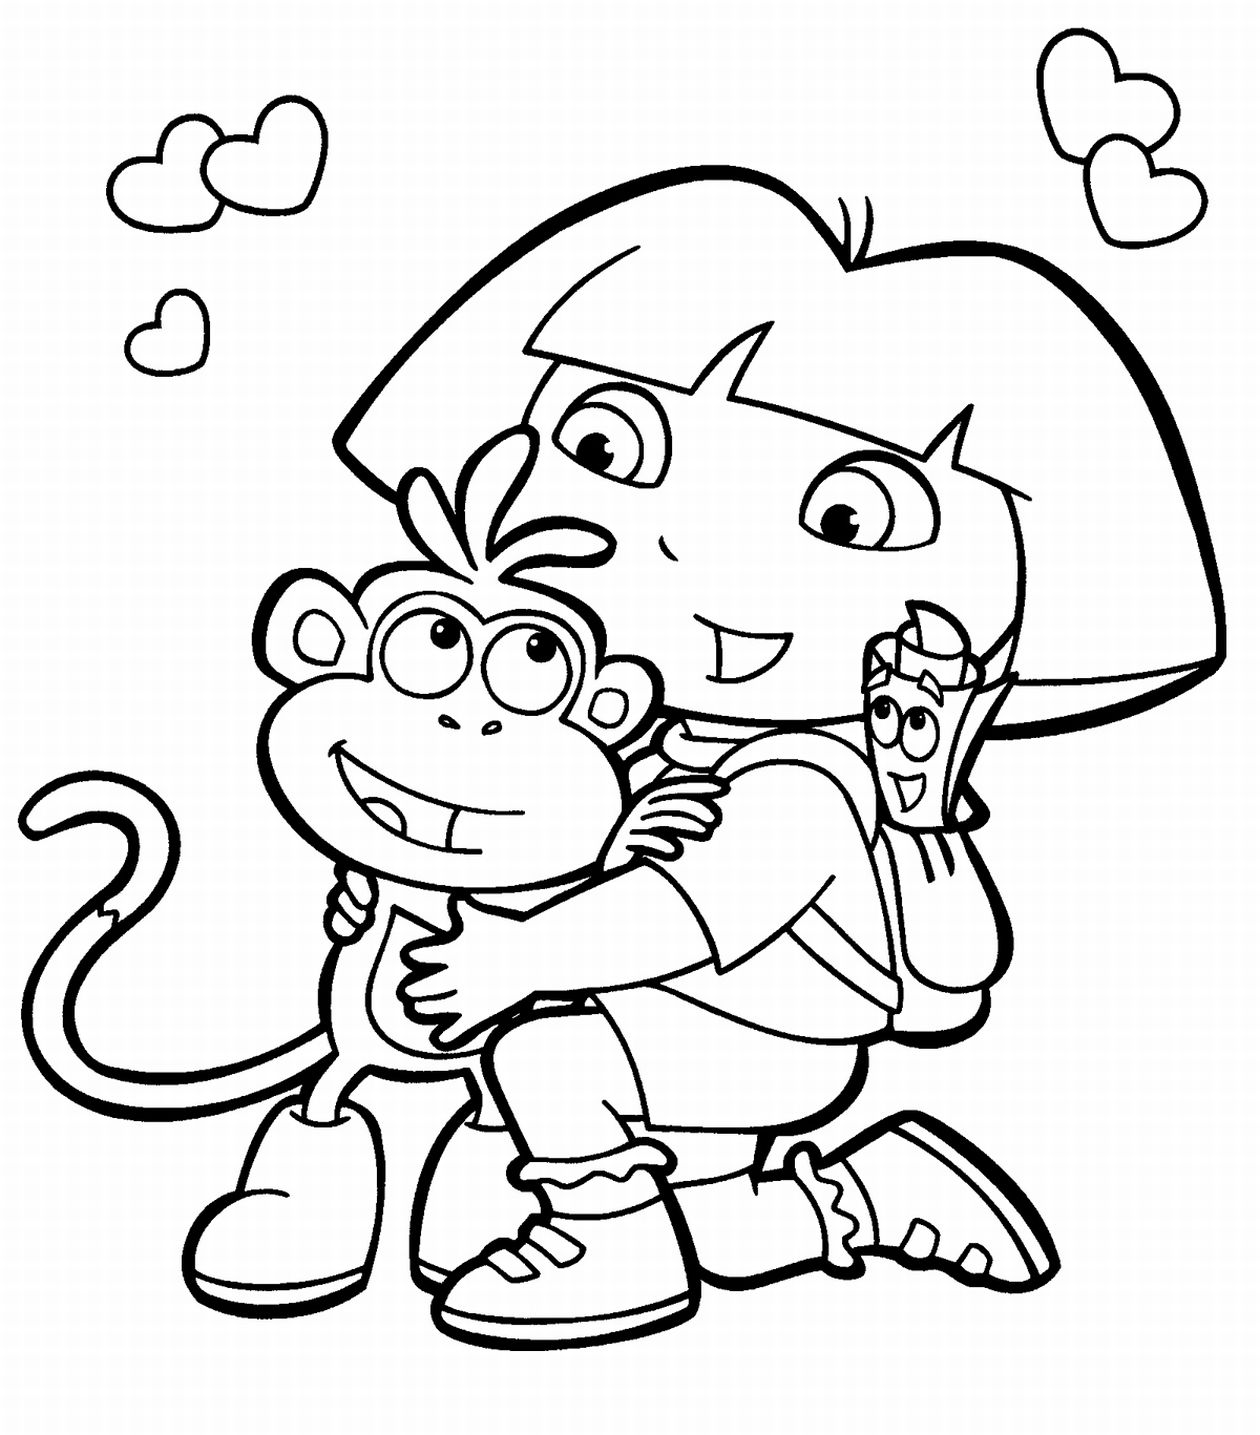 D B B Bdora and boots coloring pages LRG